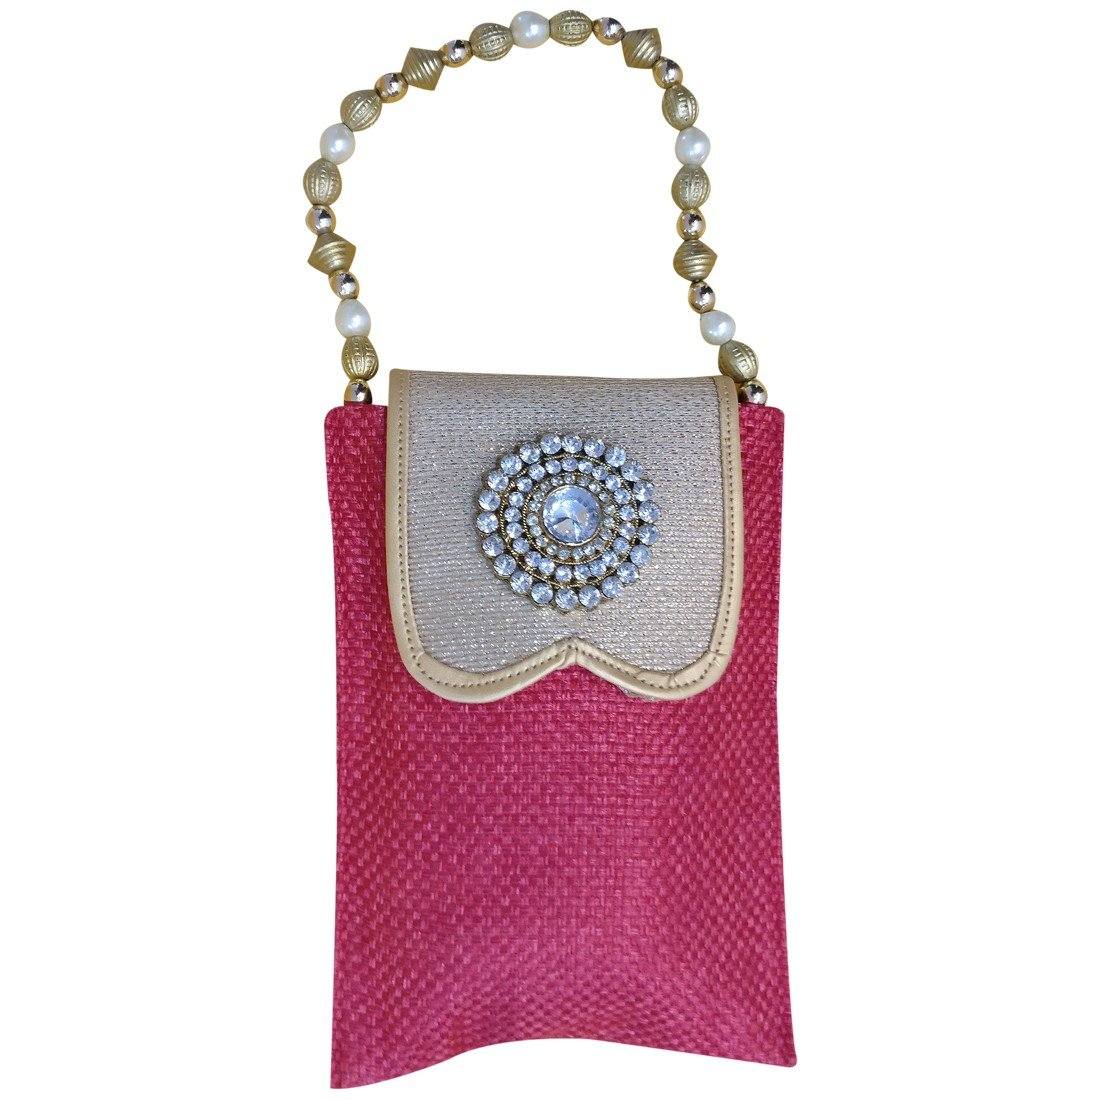 Ratnatraya Women's Mobile(Pouch) Bags for Mother, College Girls | Gift Items for Wedding, Birthday